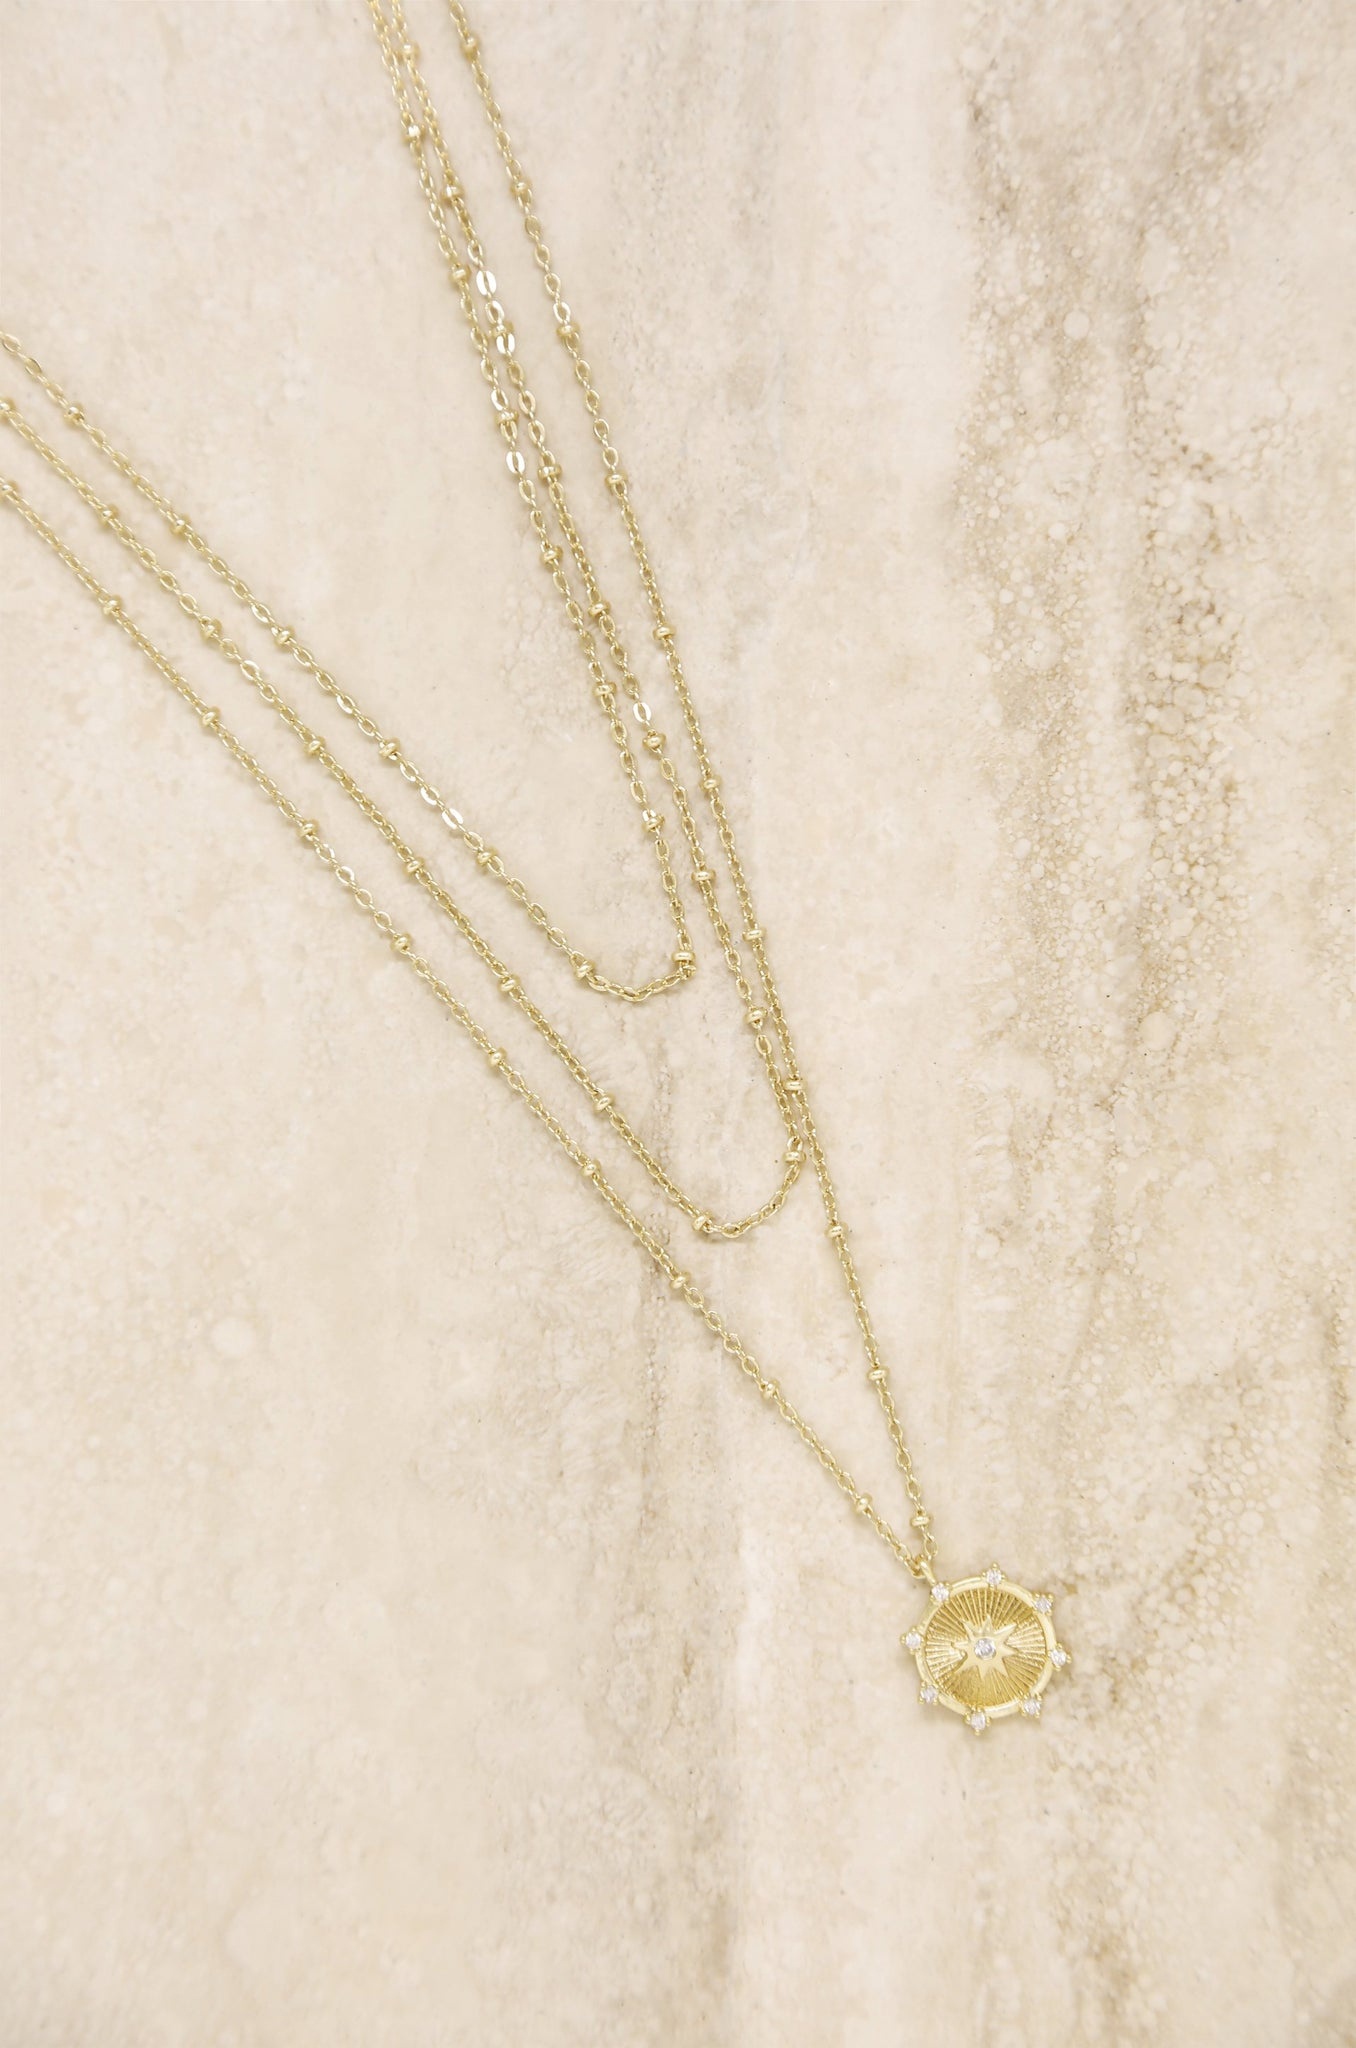 Compass Keepsake Layered 18k Gold Plated Necklace